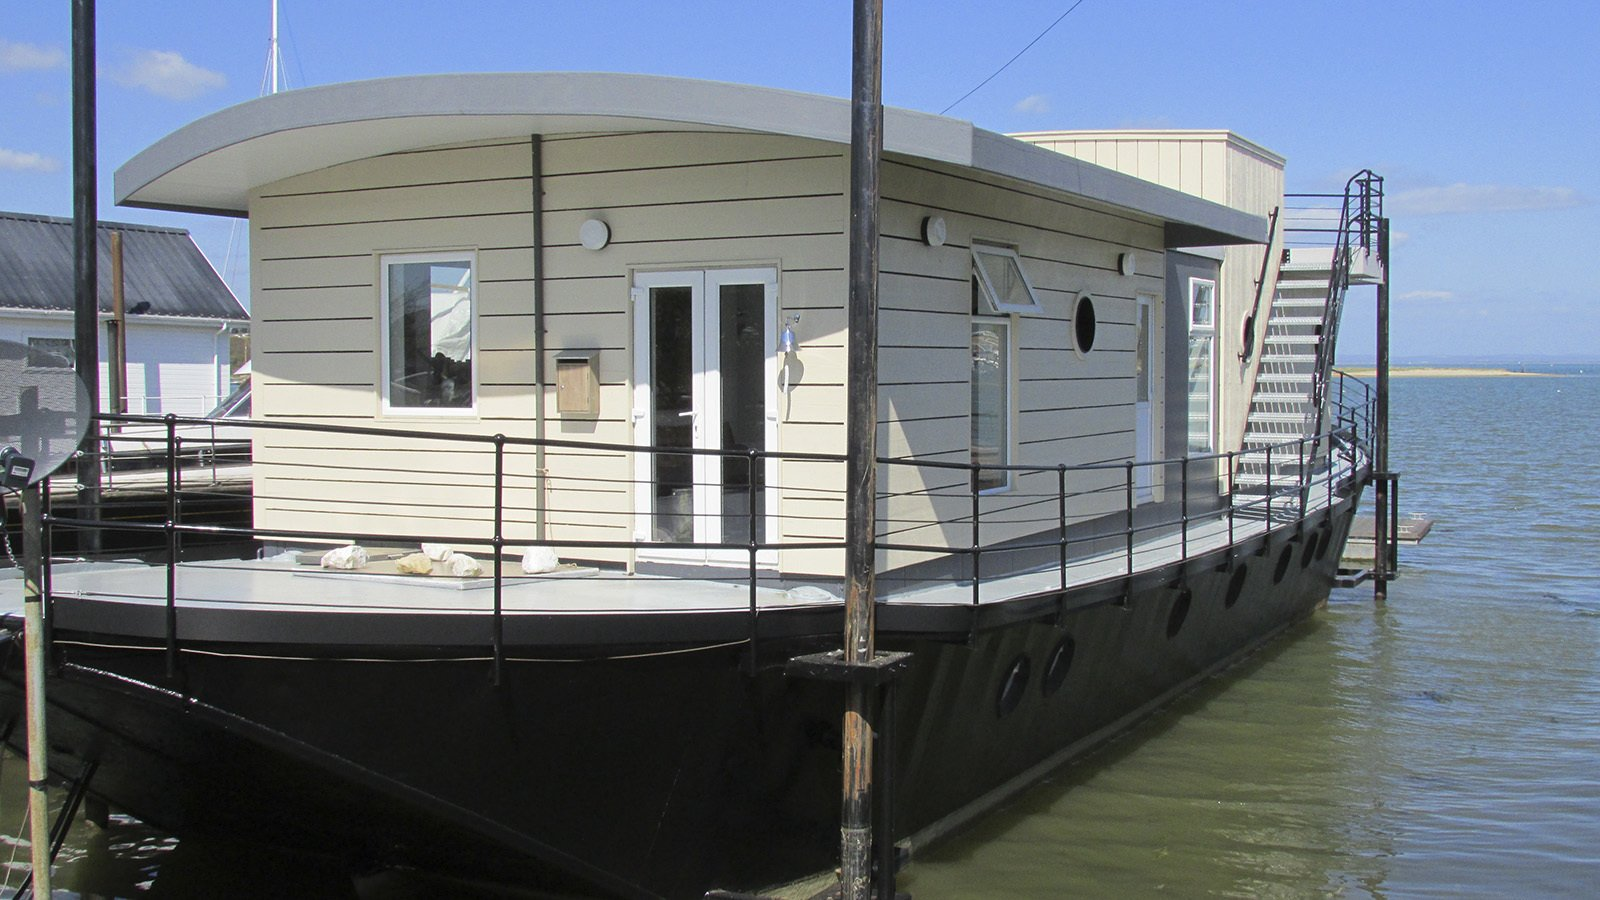 The Harbour Houseboat, which offers stunning views across Bembridge Harbour in Isle Of Wight has a commodious open-plan living lounge and kitchen, and warmly furnished rooms with plush Loaf beds.  Photo 8 of 11 in Make Yourself at Home in One of These Small Spaces on Boats That You Can Rent